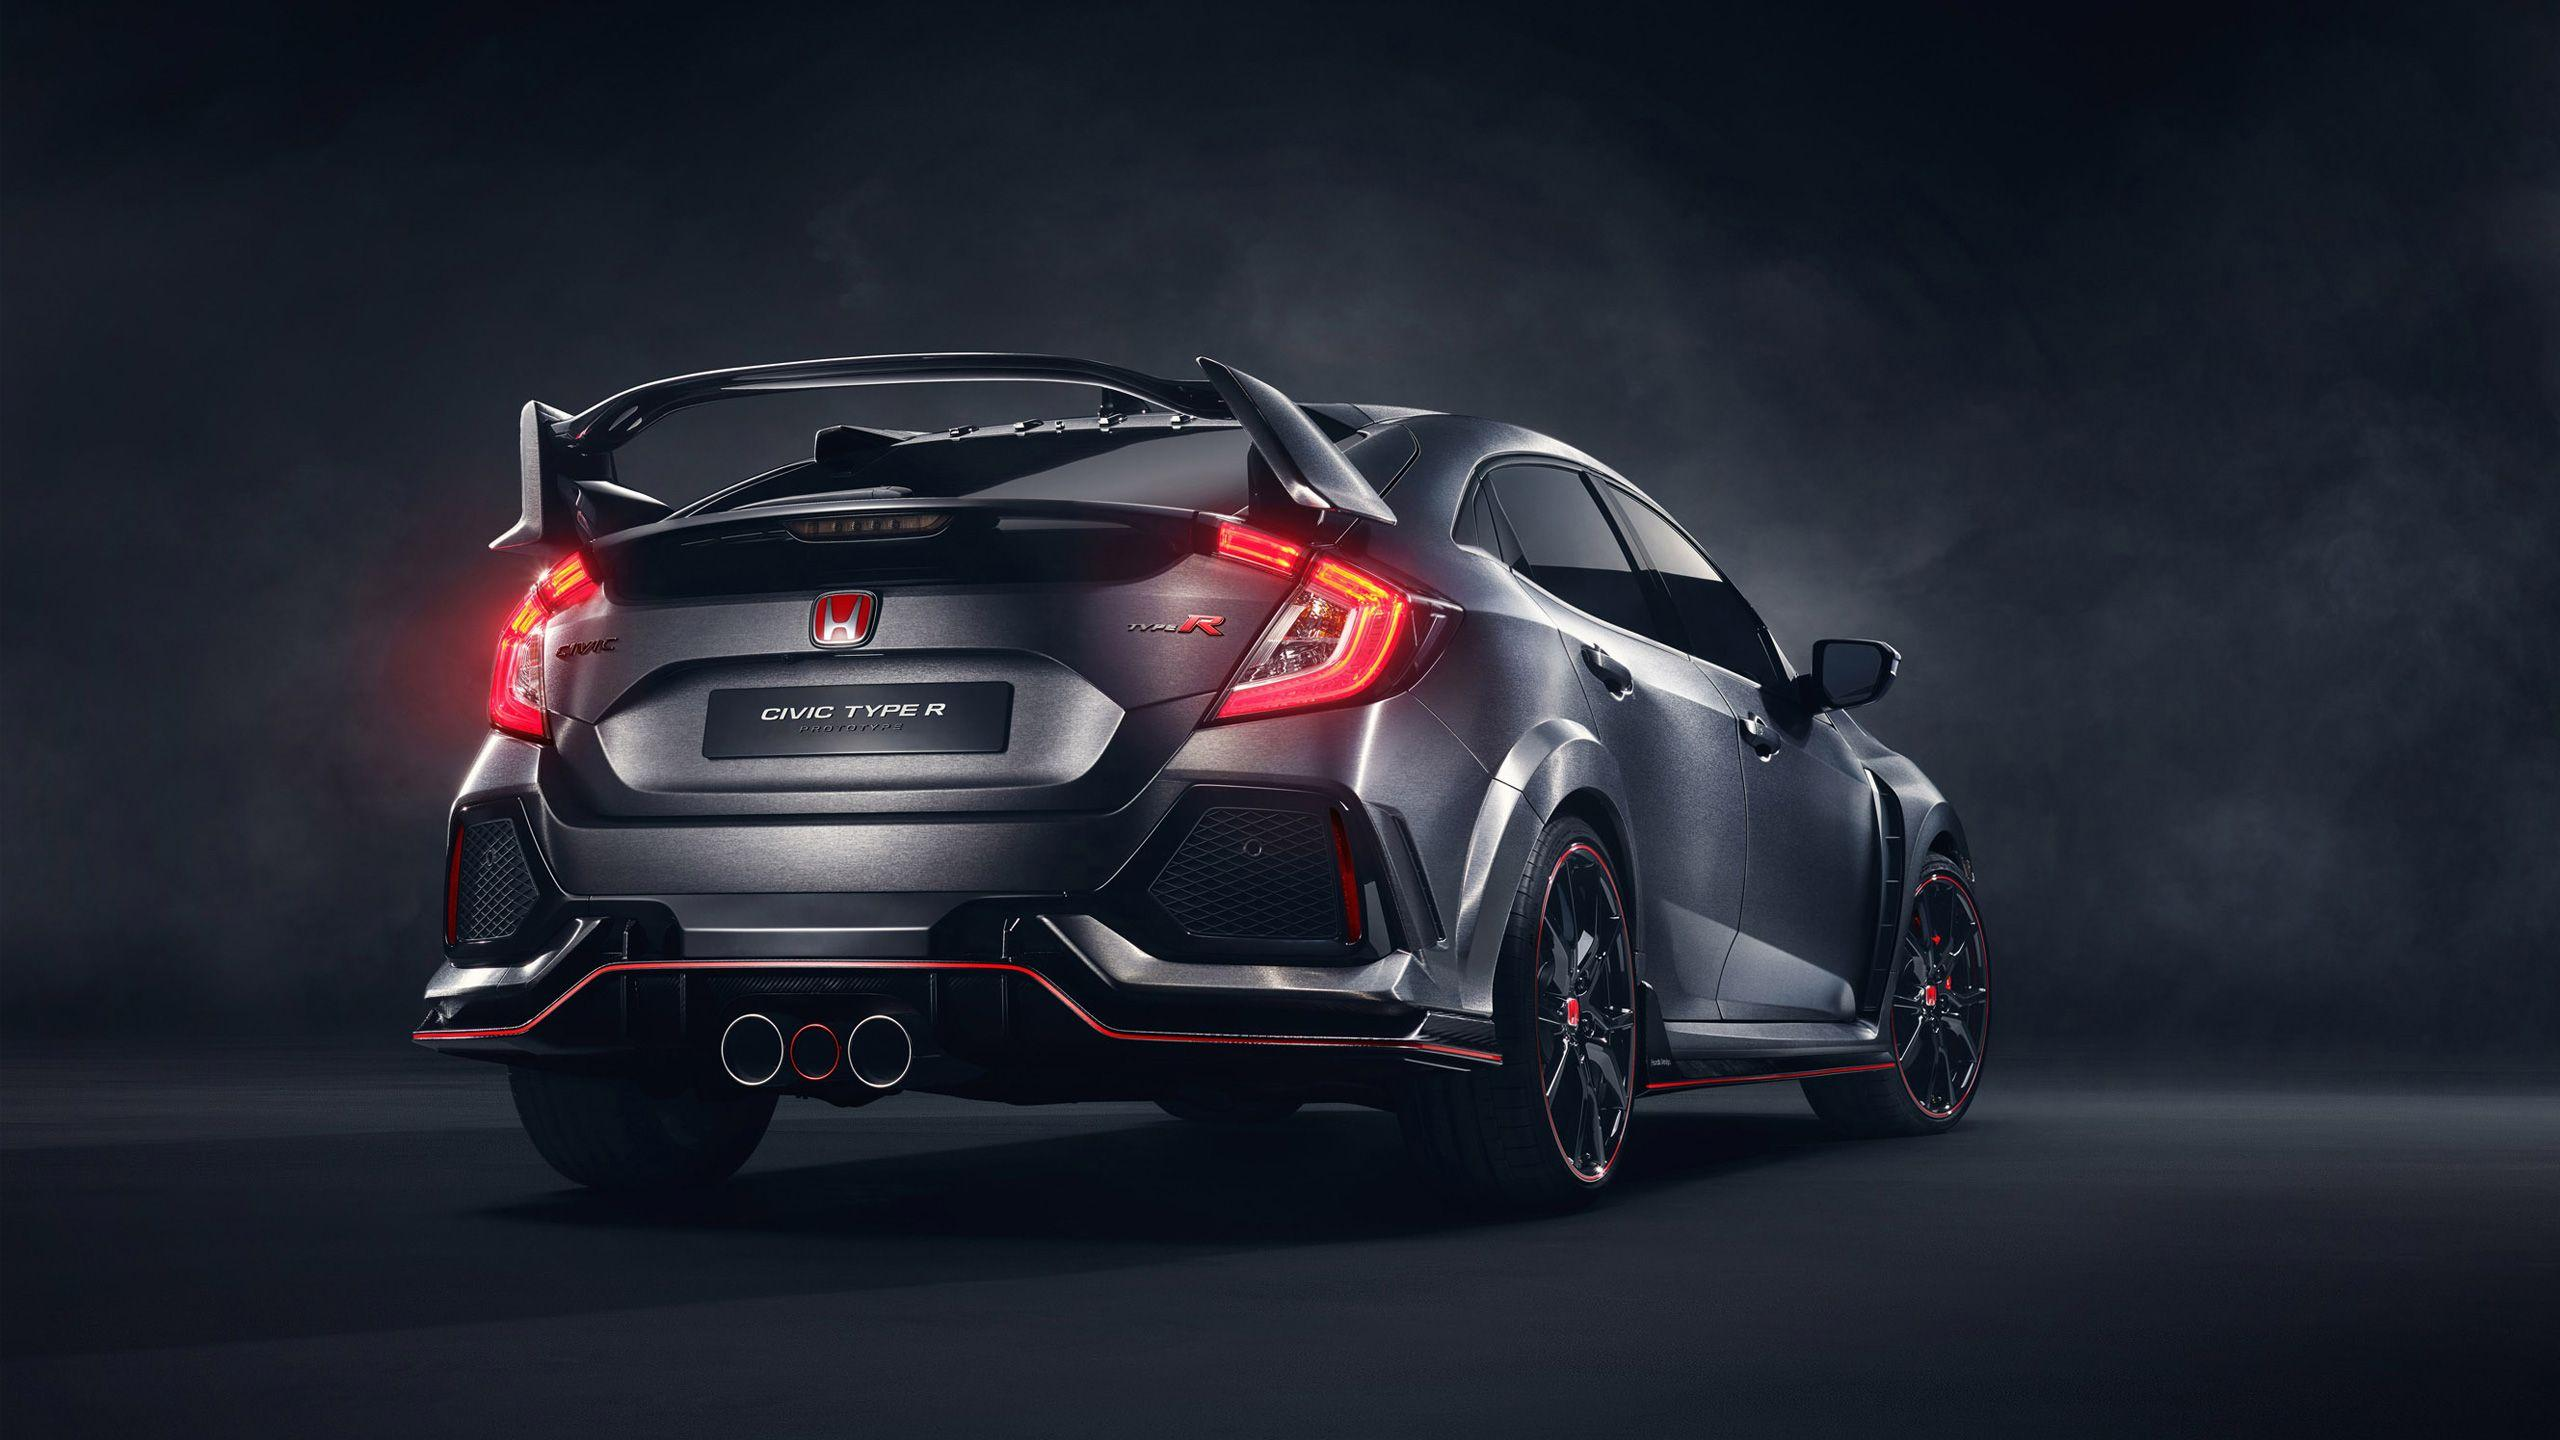 2017 Honda Civic Type R 3 Wallpaper | HD Car Wallpapers